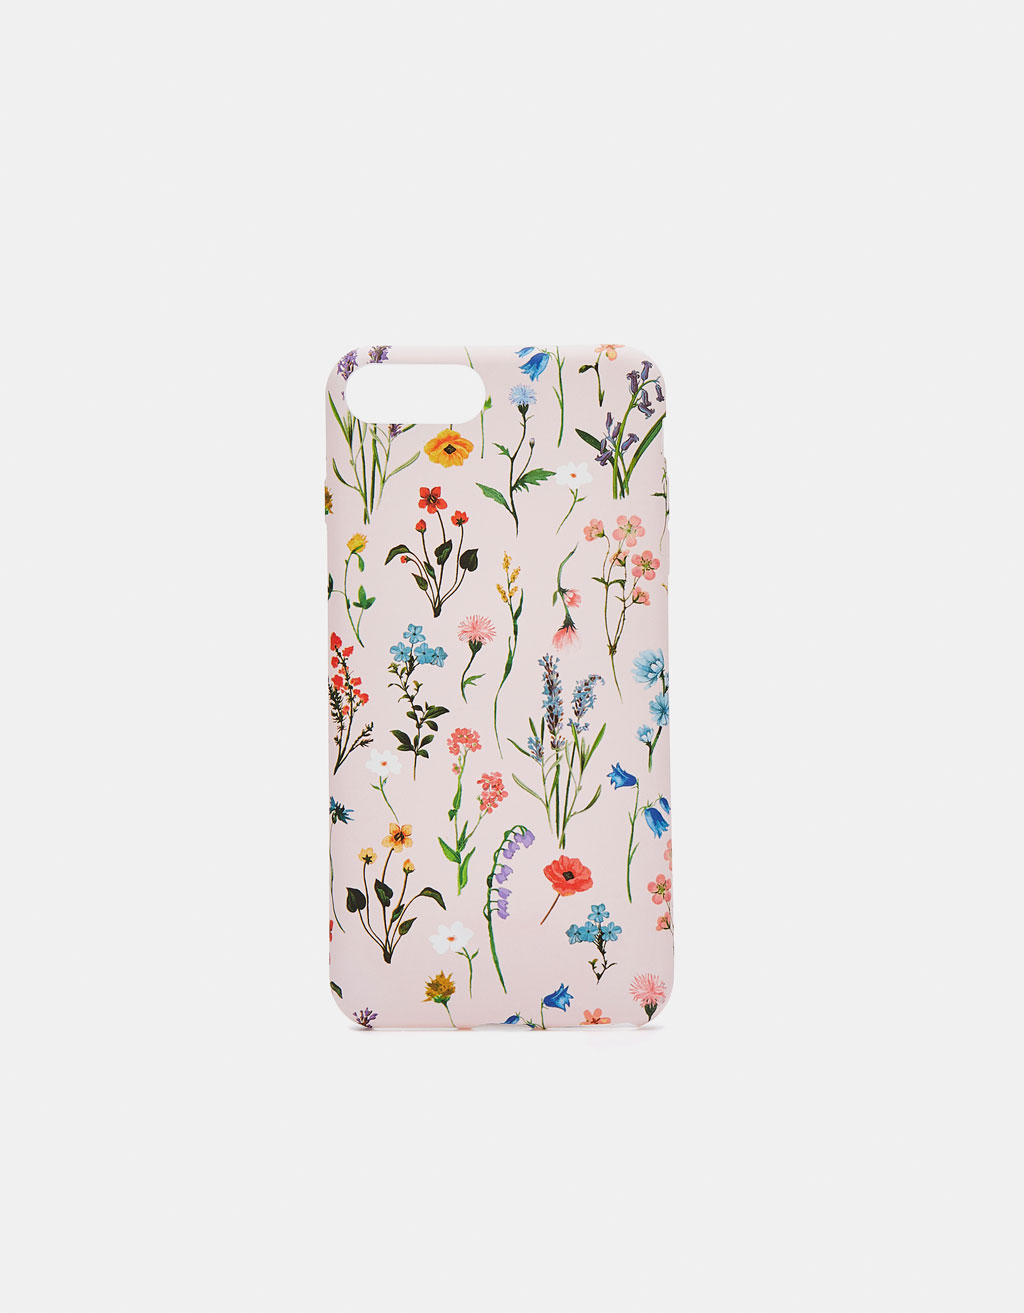 Carcasa de flores iPhone 6plus/7plus/8plus